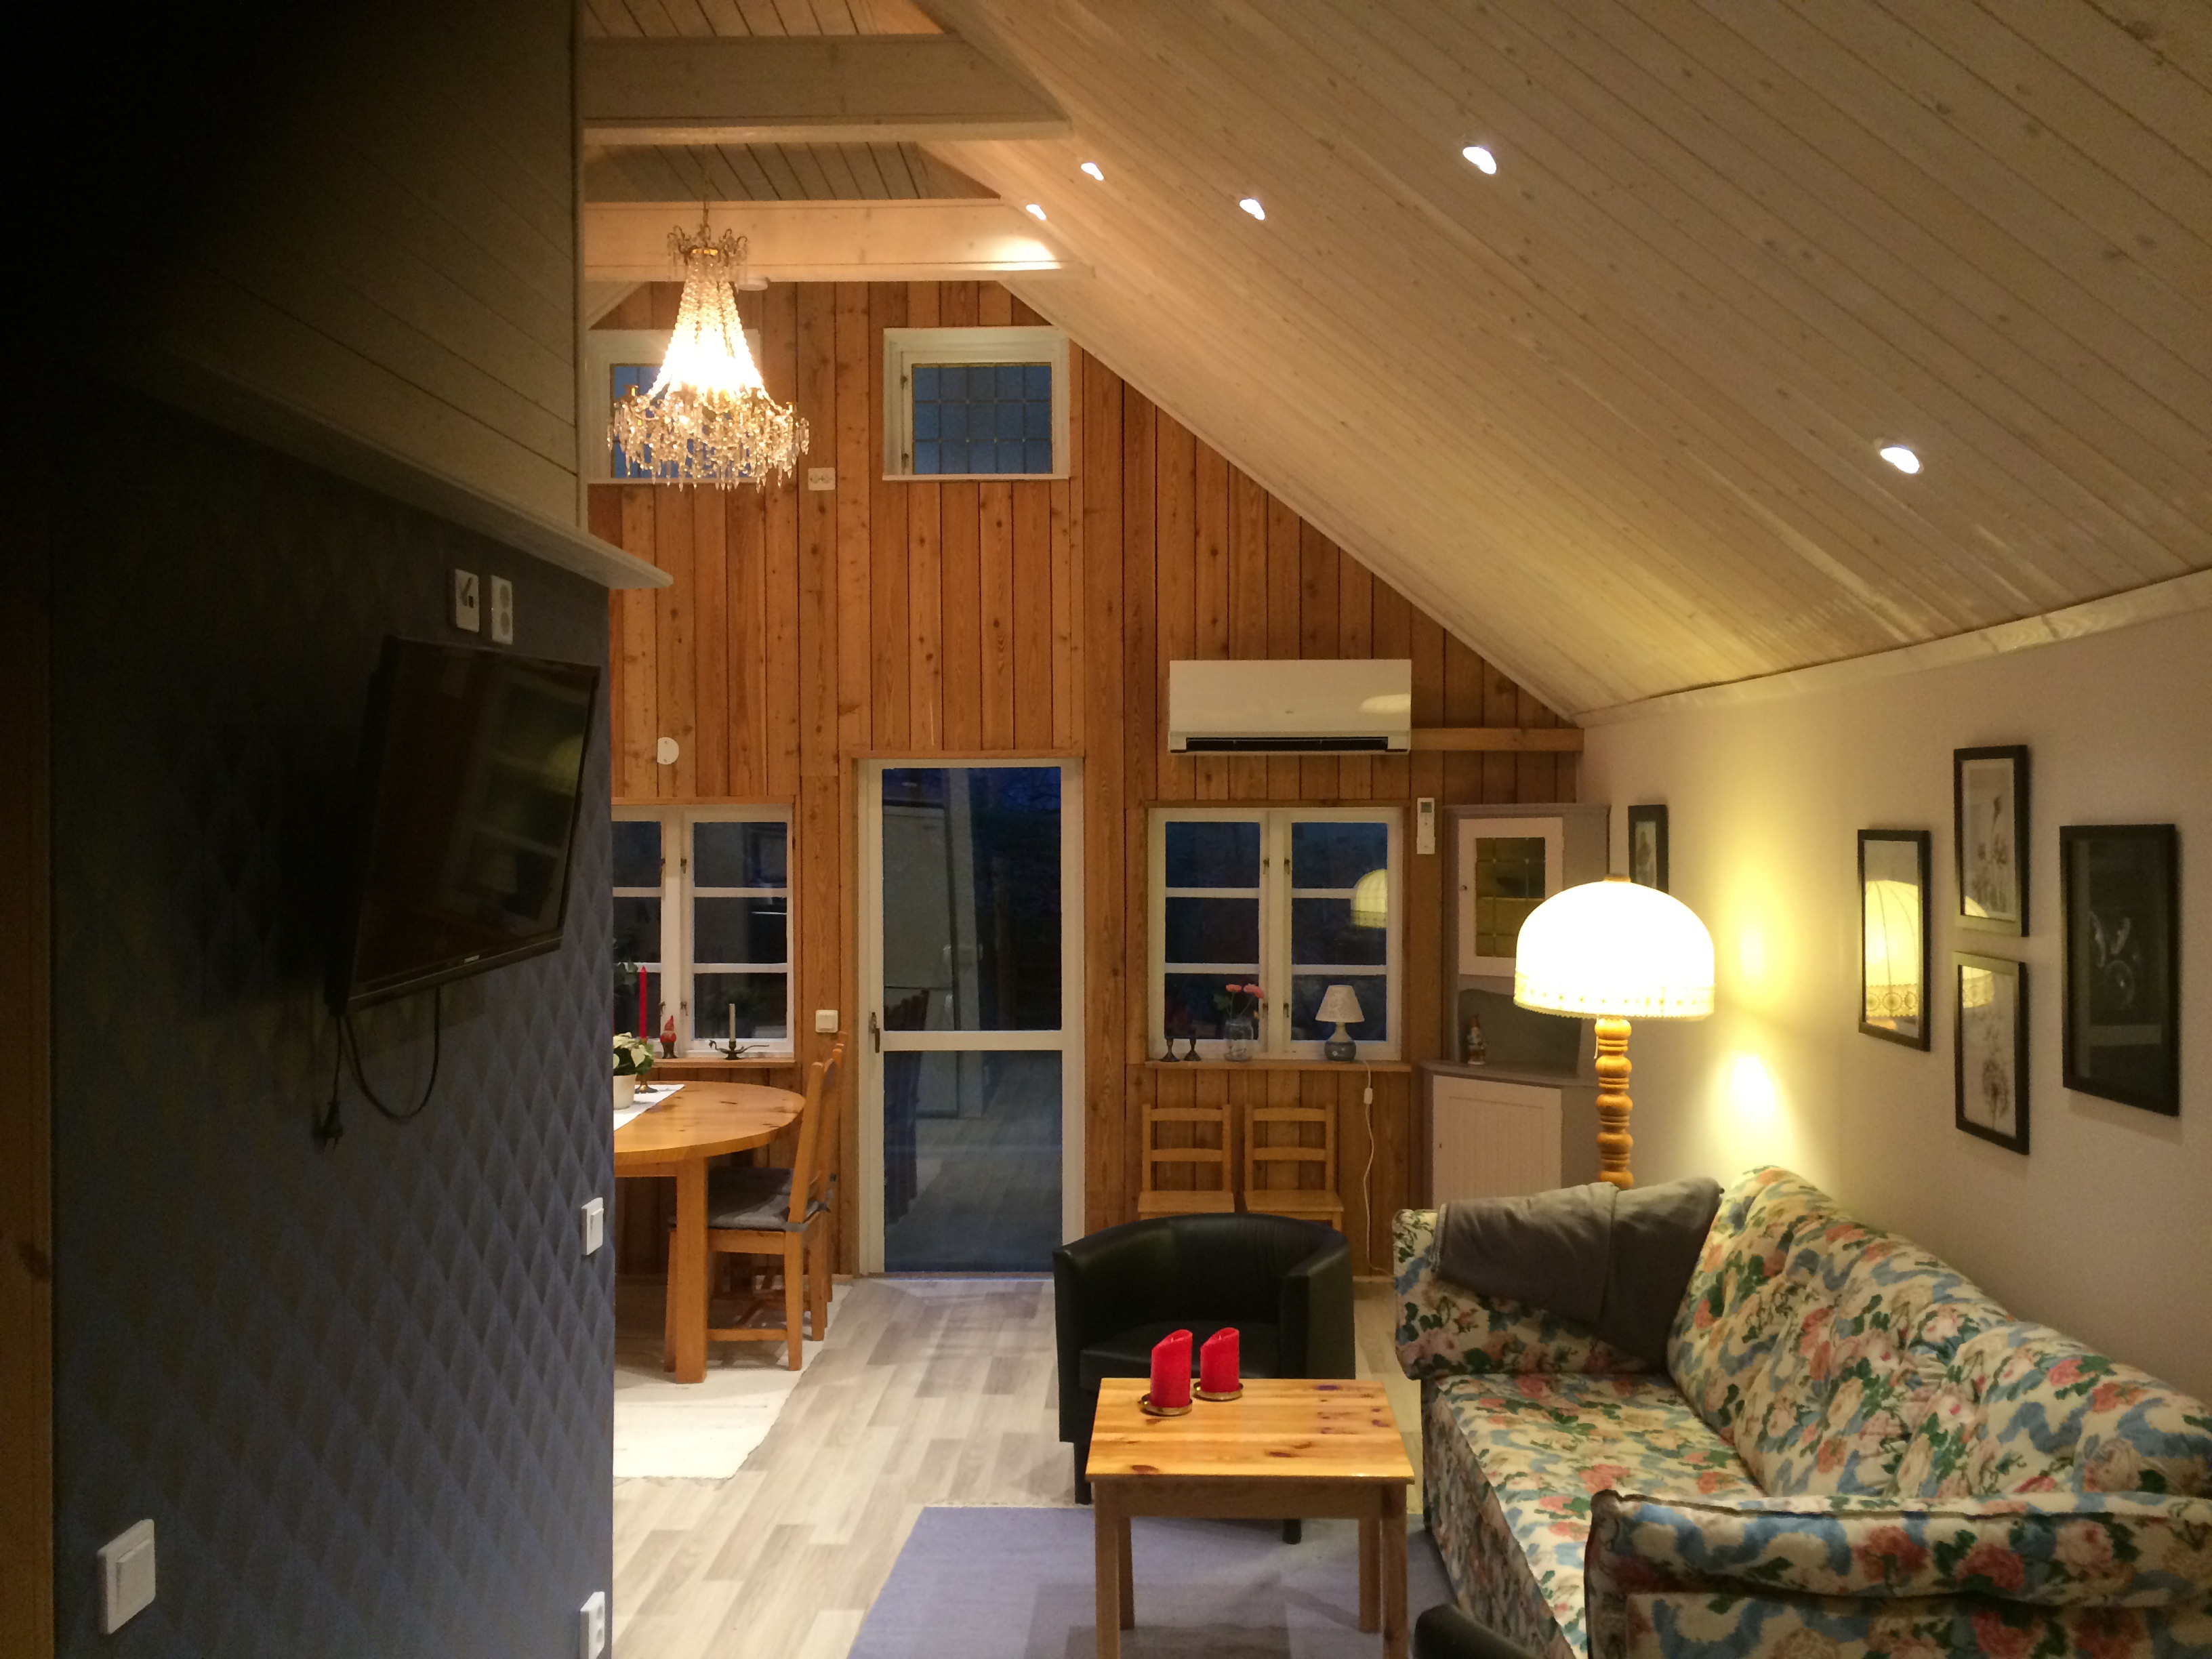 Sknt boende i Gunnarp - Cabins for Rent in Gunnarp - Airbnb